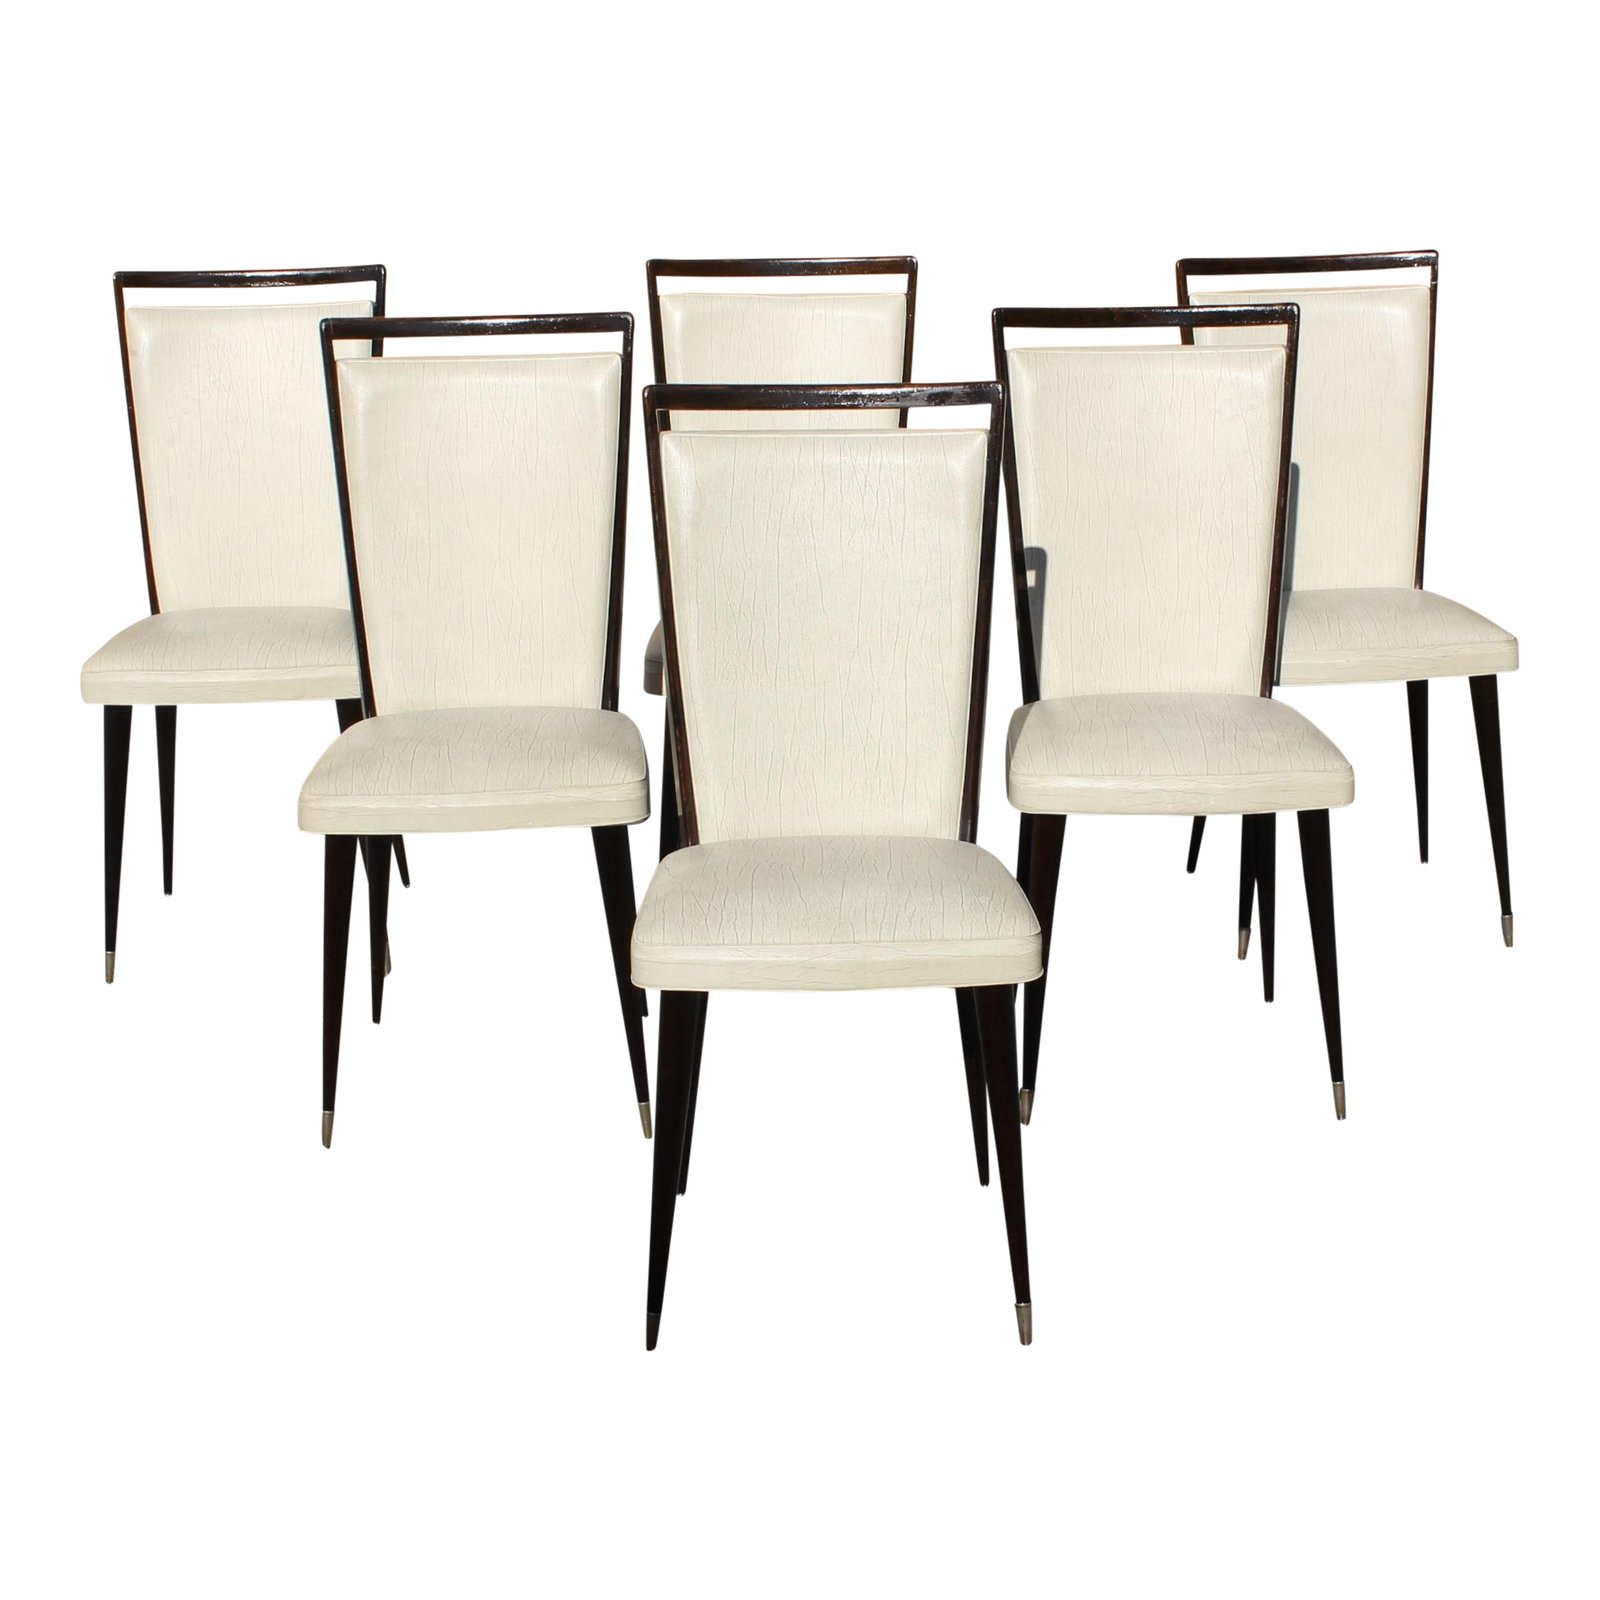 Art Deco Dining Chairs Fine Set Of 6 French Art Deco Solid Mahogany Dining Chairs Circa 1940s